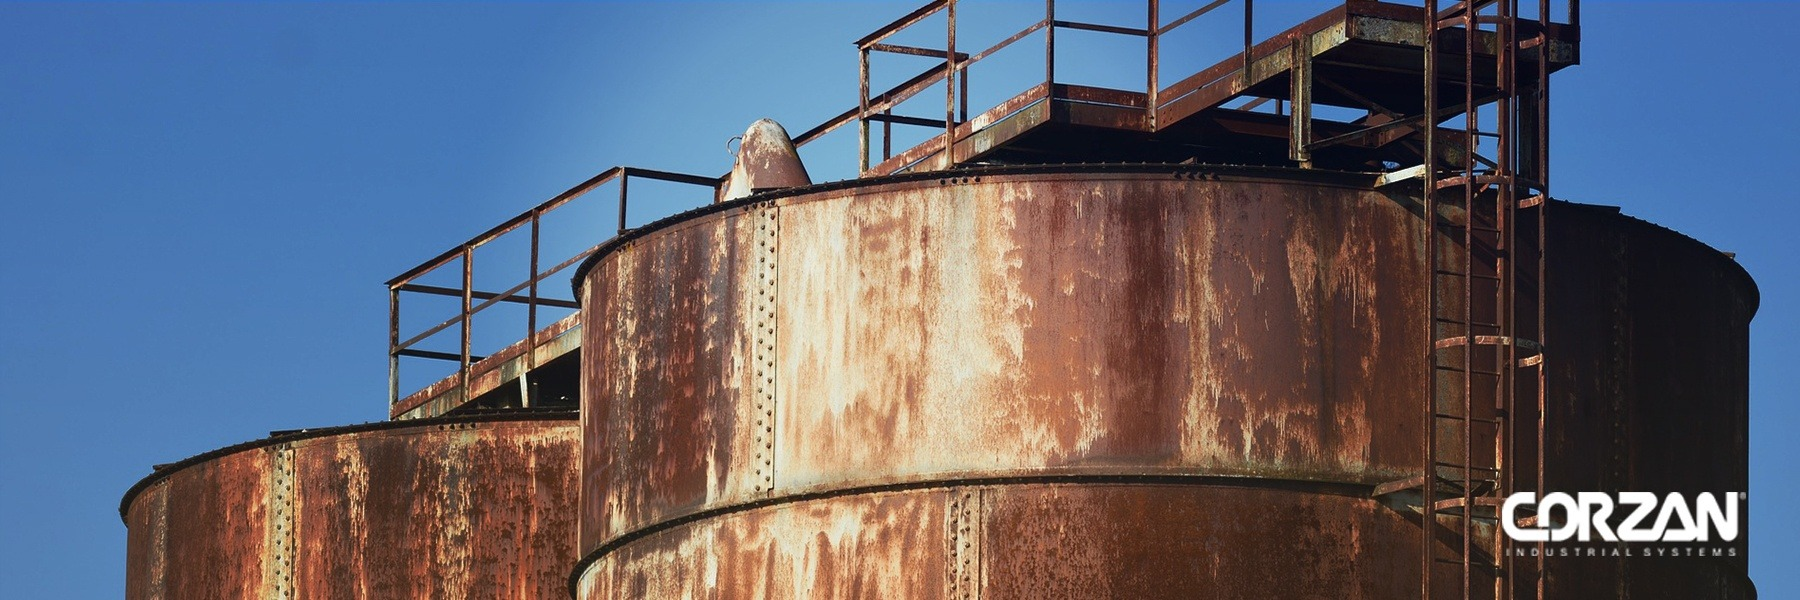 IMPORTANT CONSIDERATIONS TO SAFELY STORE AND HANDLE CORROSIVE ACIDS AND BASES IN INDUSTRIAL PLANTS